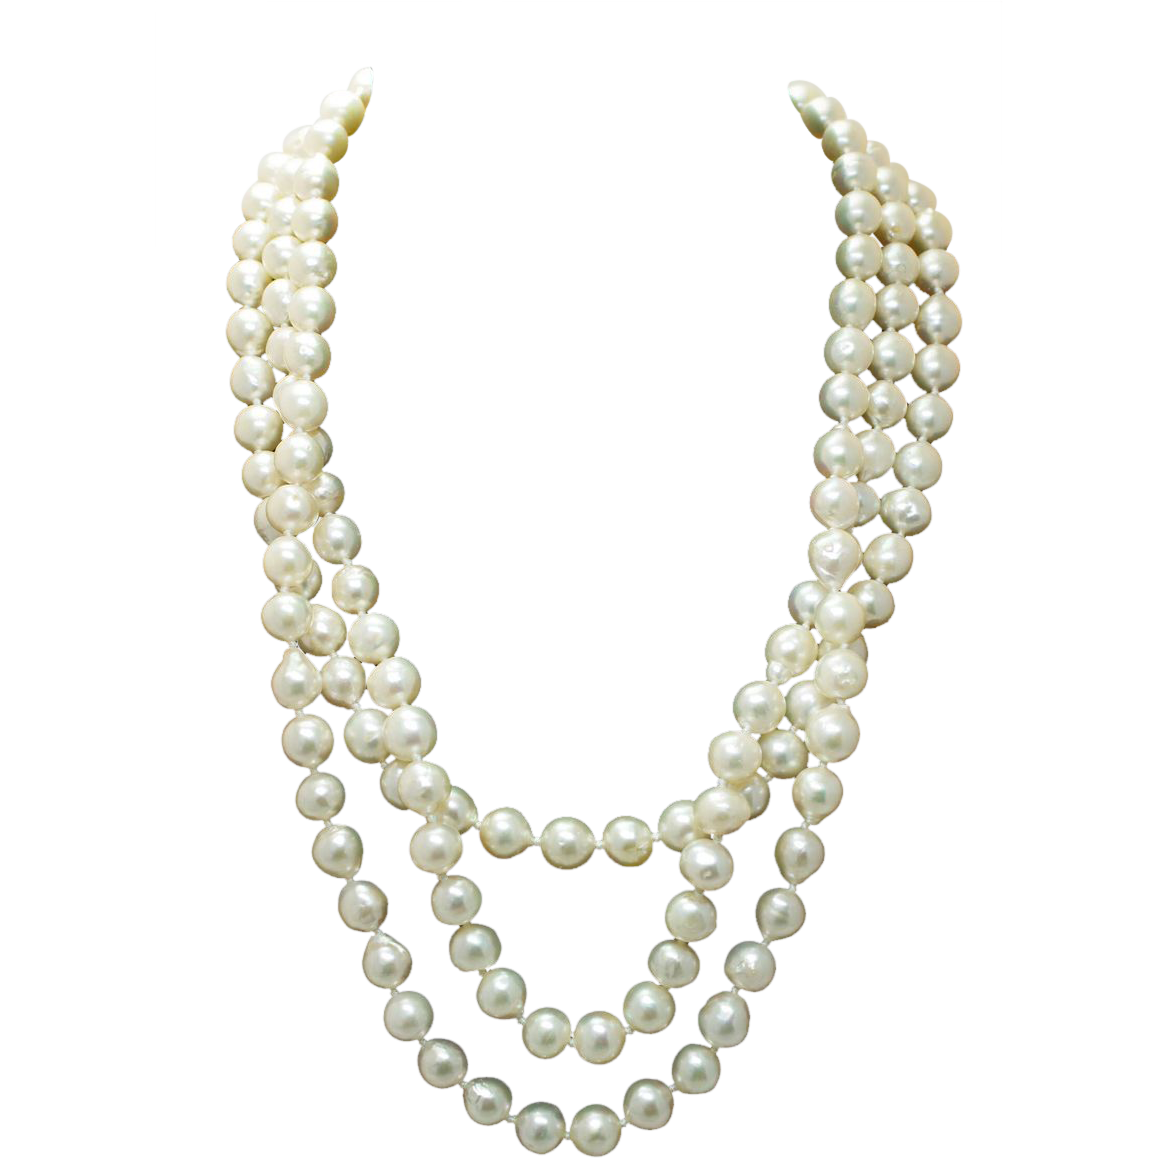 Transparent pearls. Best jewelry no background